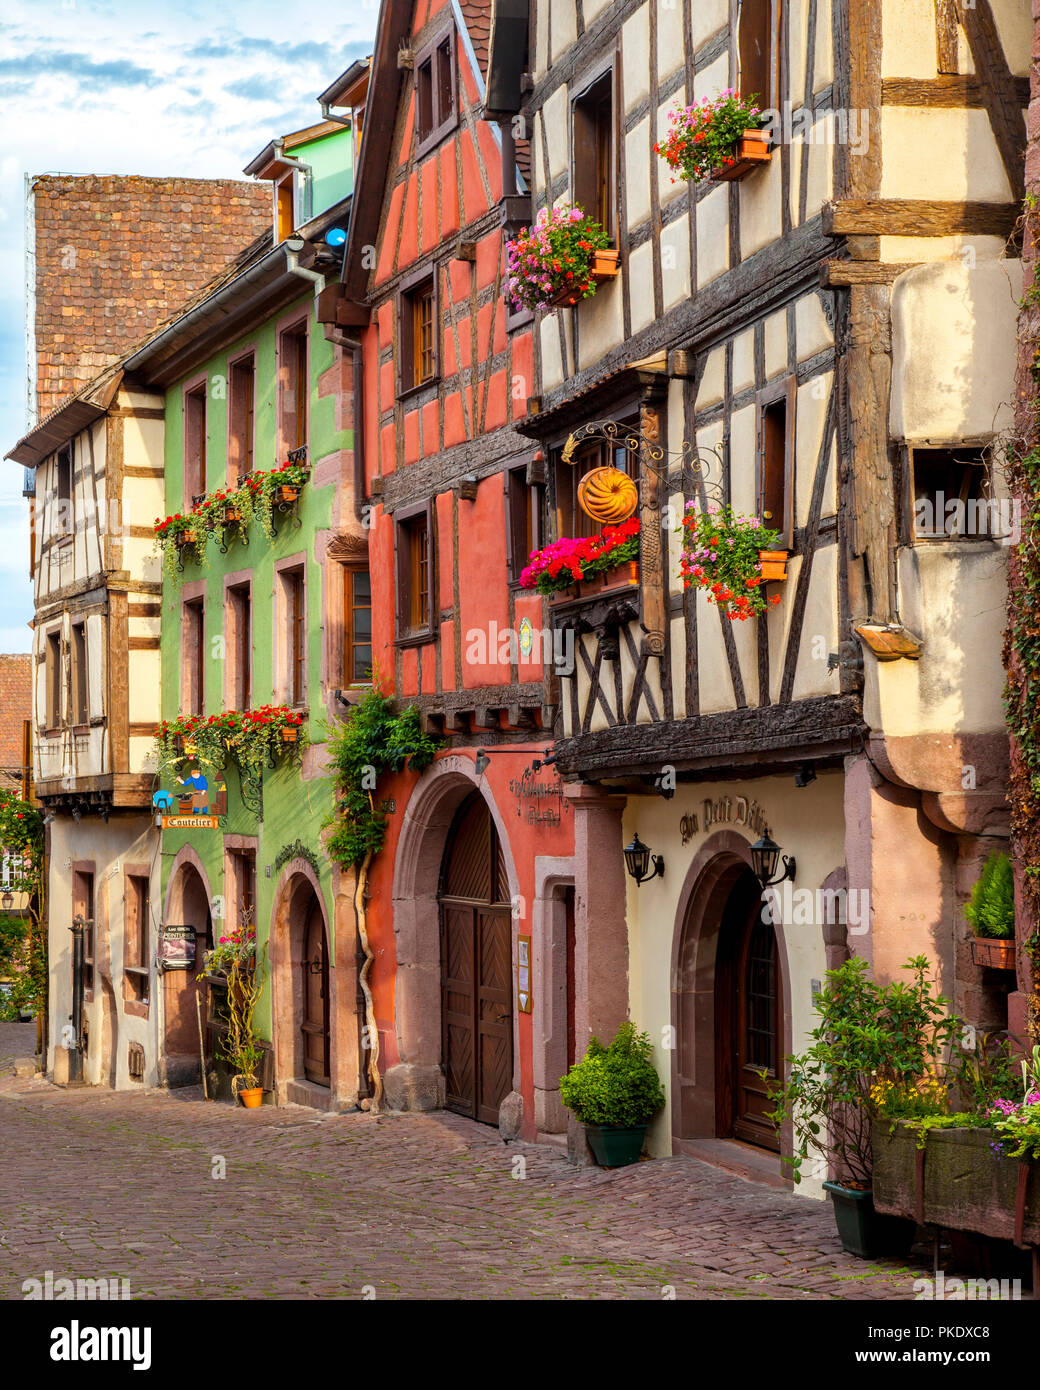 Half-Timbered buildings on Rue du General de Gaulle in Riquewihr - along the Wine Route, Alsace Haut-Rhin France - Stock Image